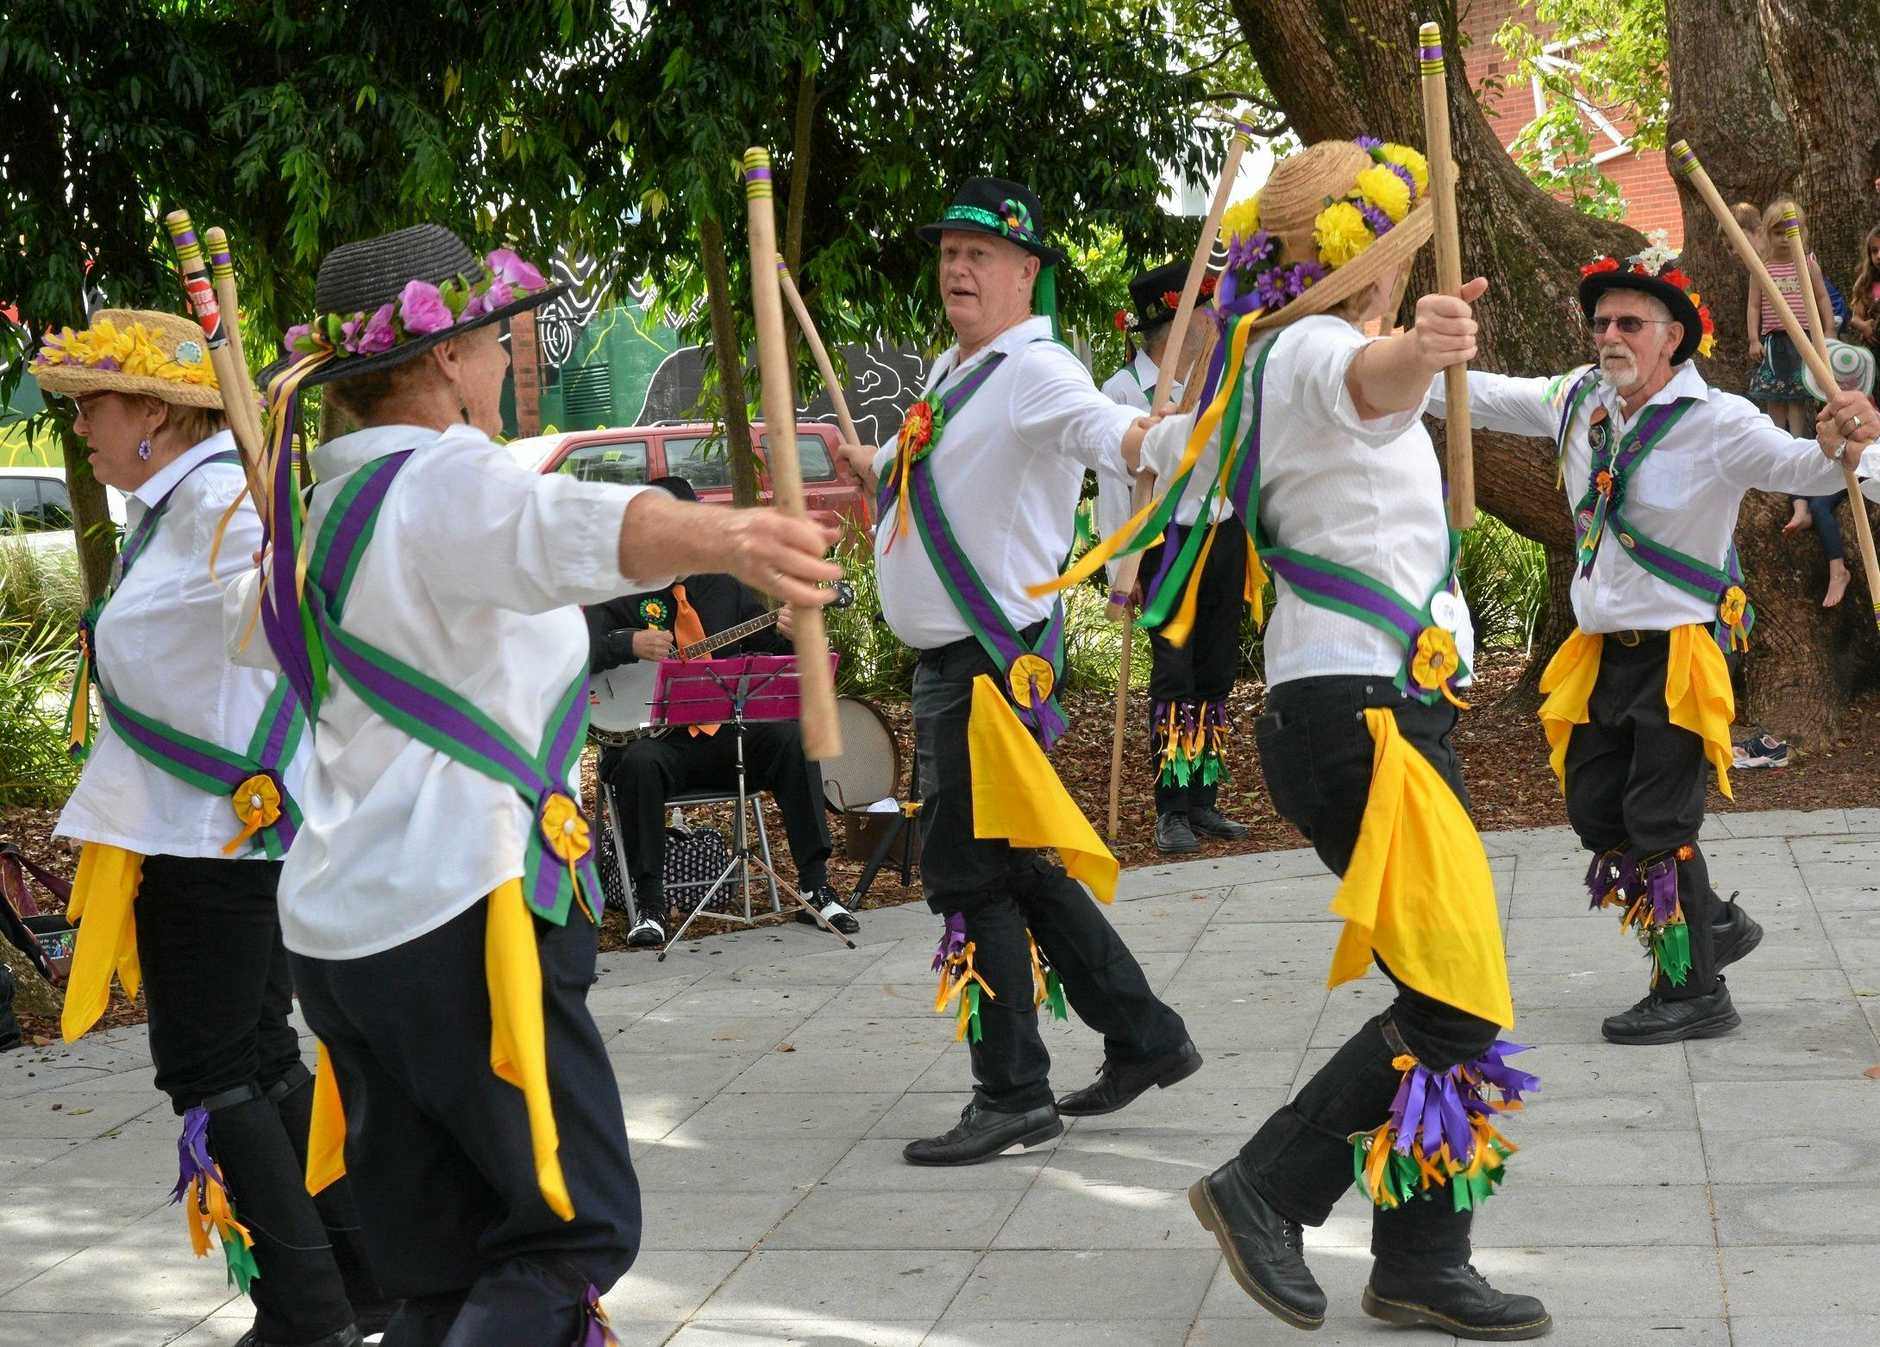 Fiddle Stix Morris dancers colour up any event with dance and music.